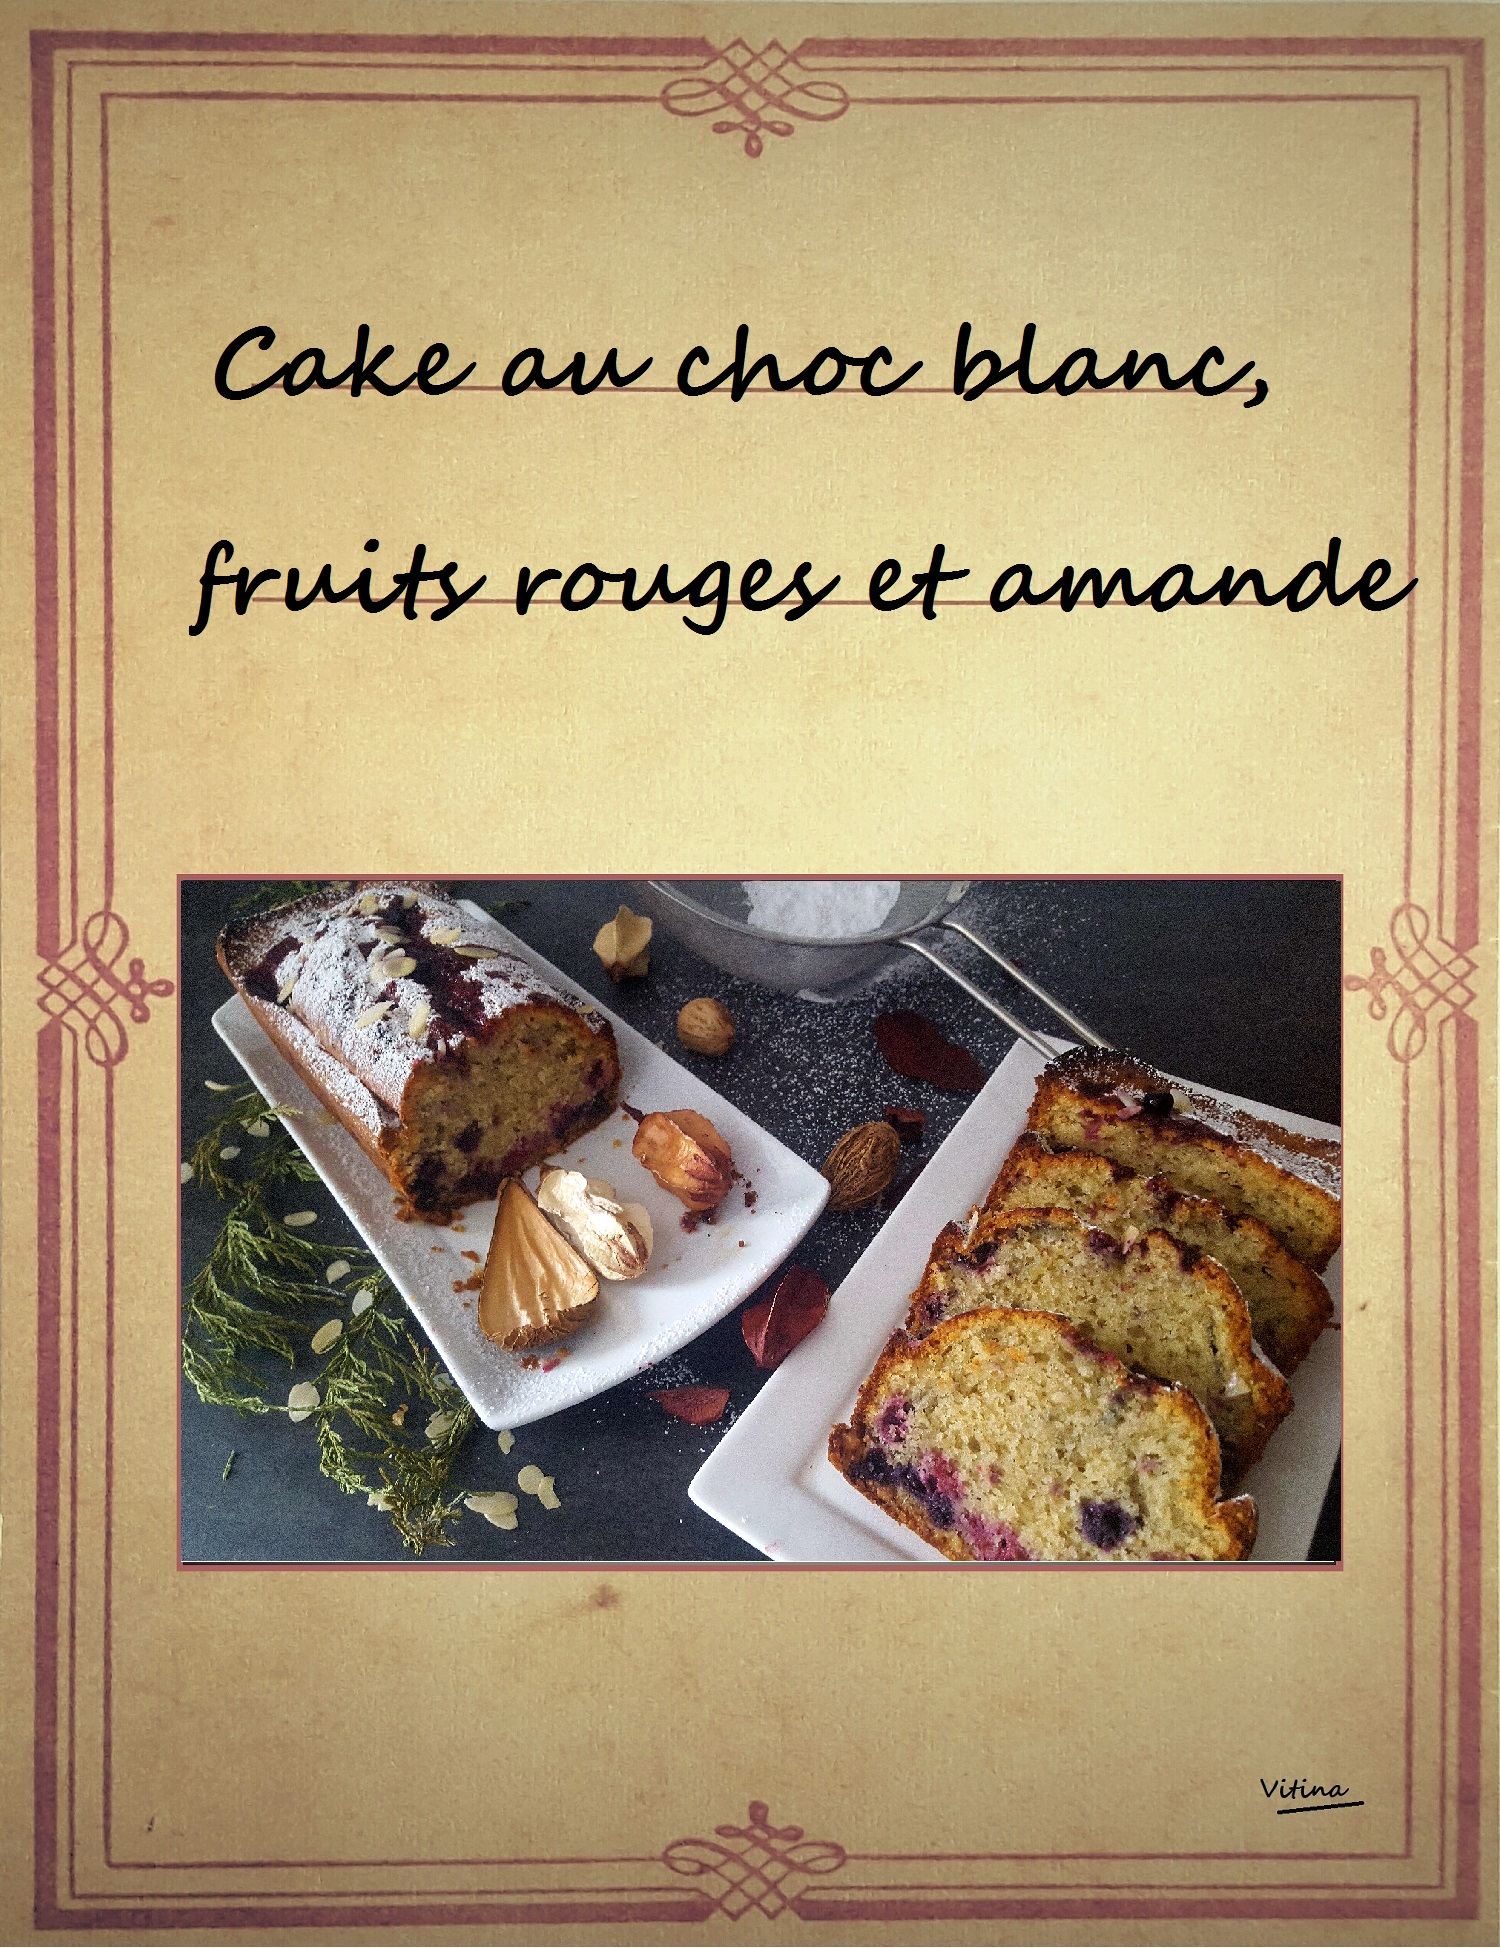 cake au chocolat blanc, fruits rouges et amande